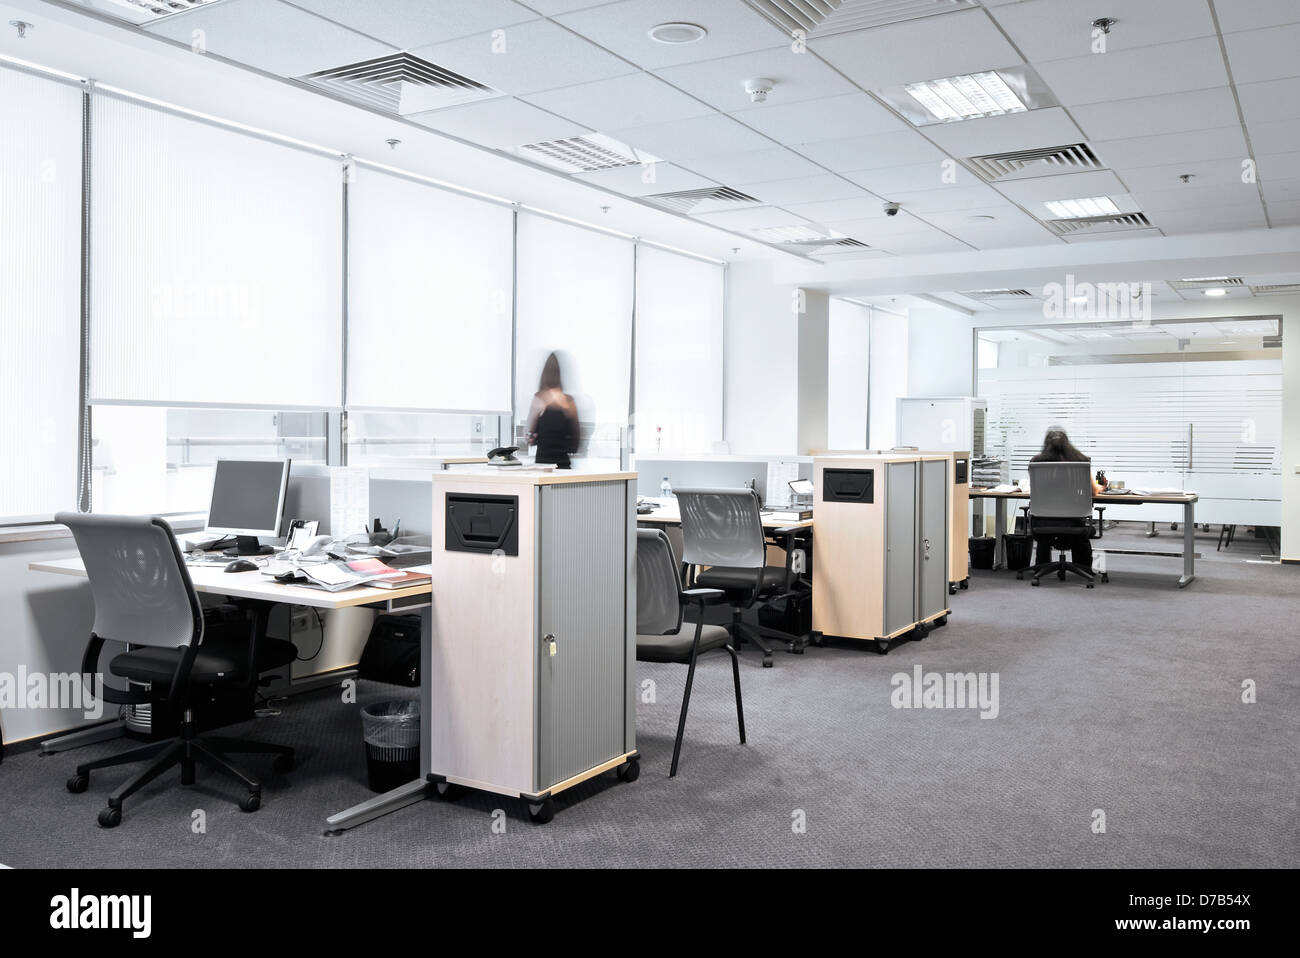 Company Tidy Office Why Keep Your Office Clean The Evidence May